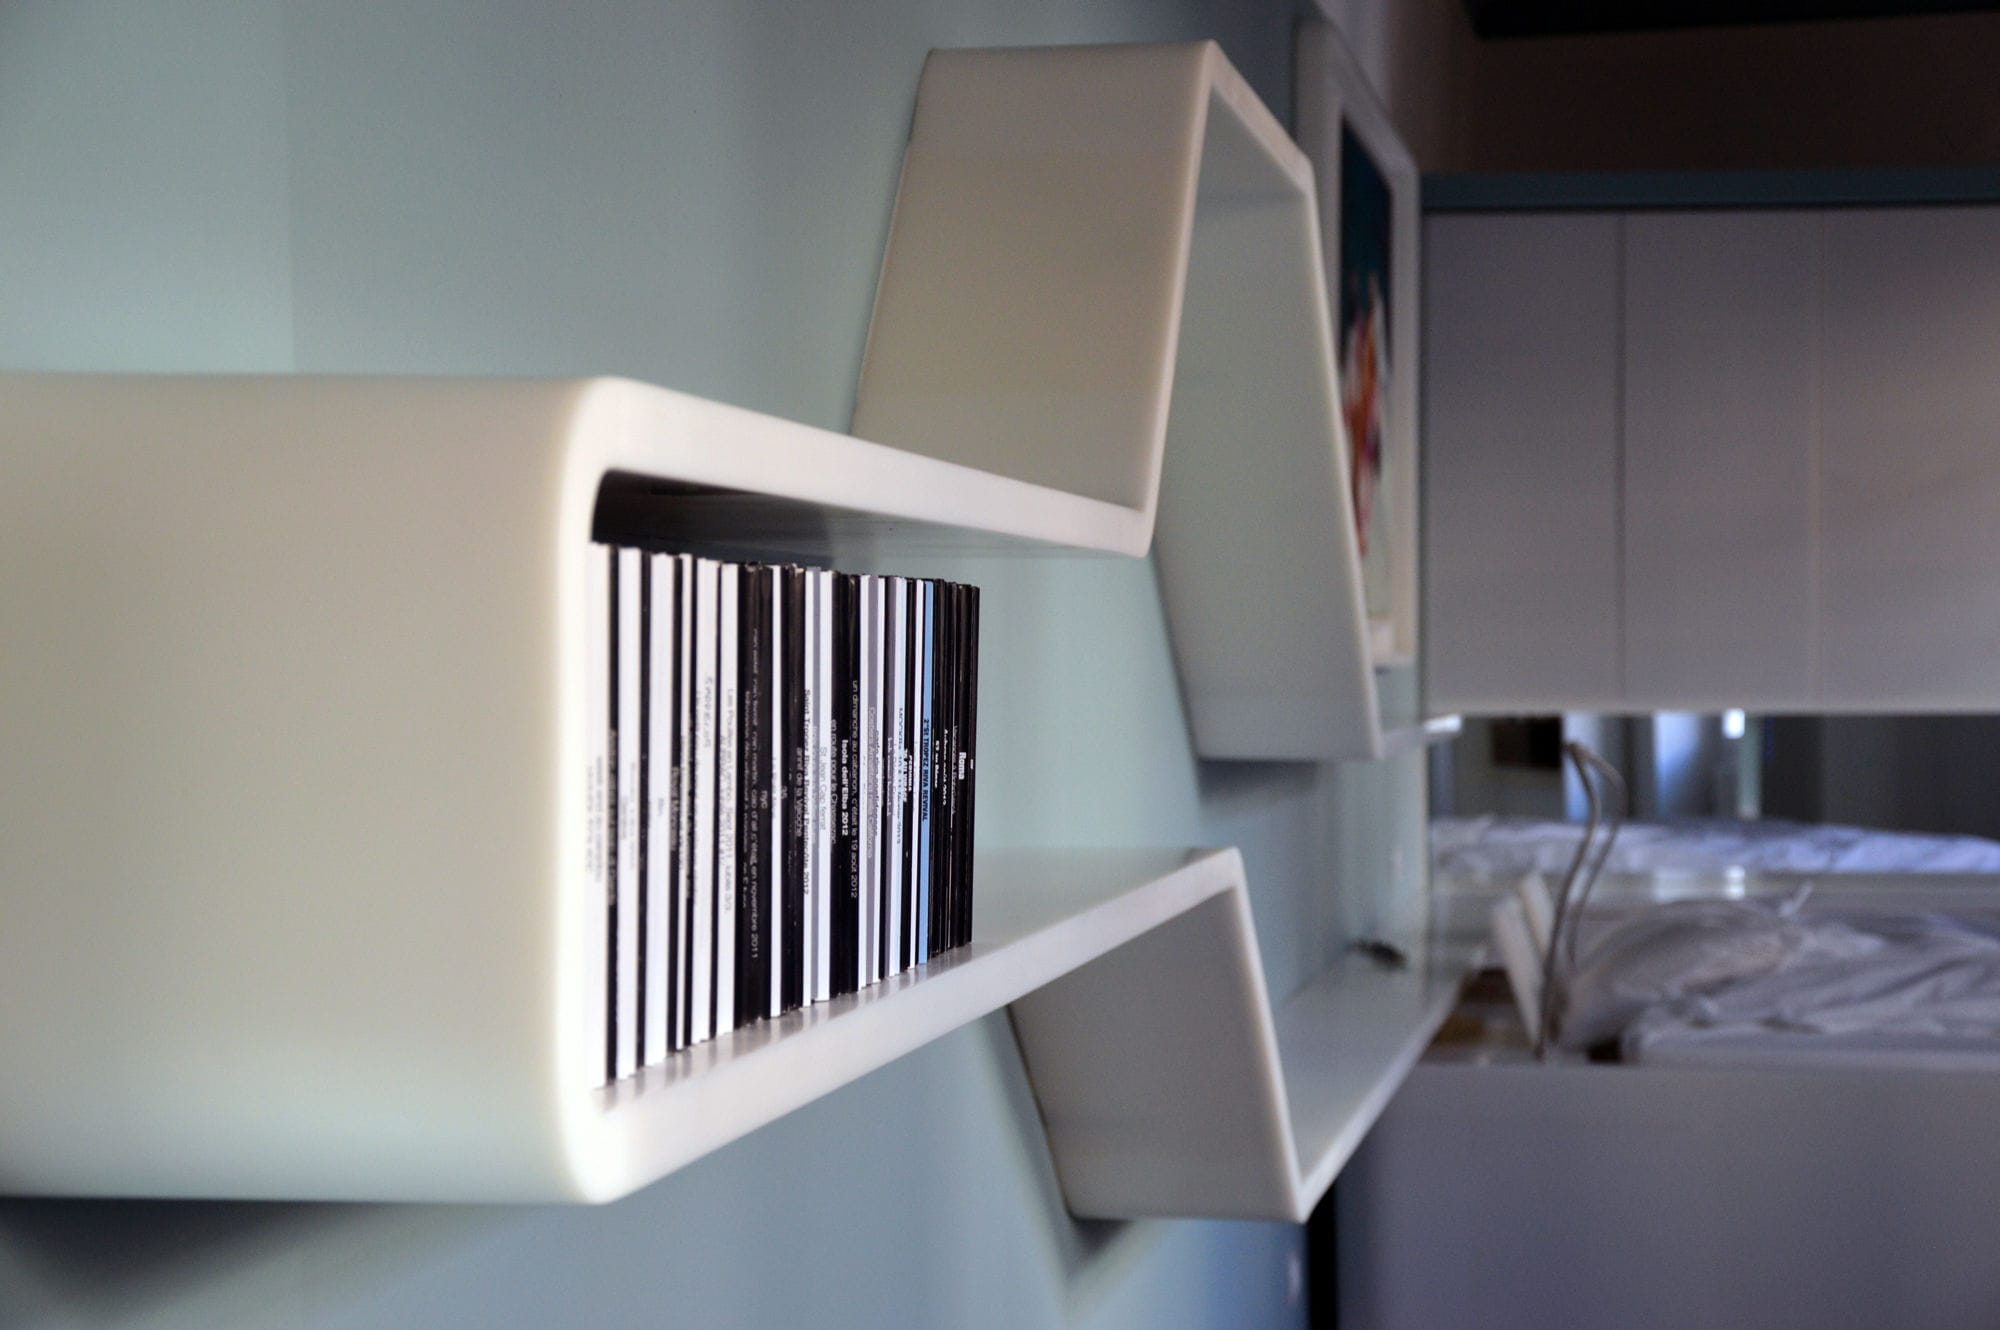 Indirect Wall Lighting wall-mounted shelf / contemporary / solid surface / with indirect